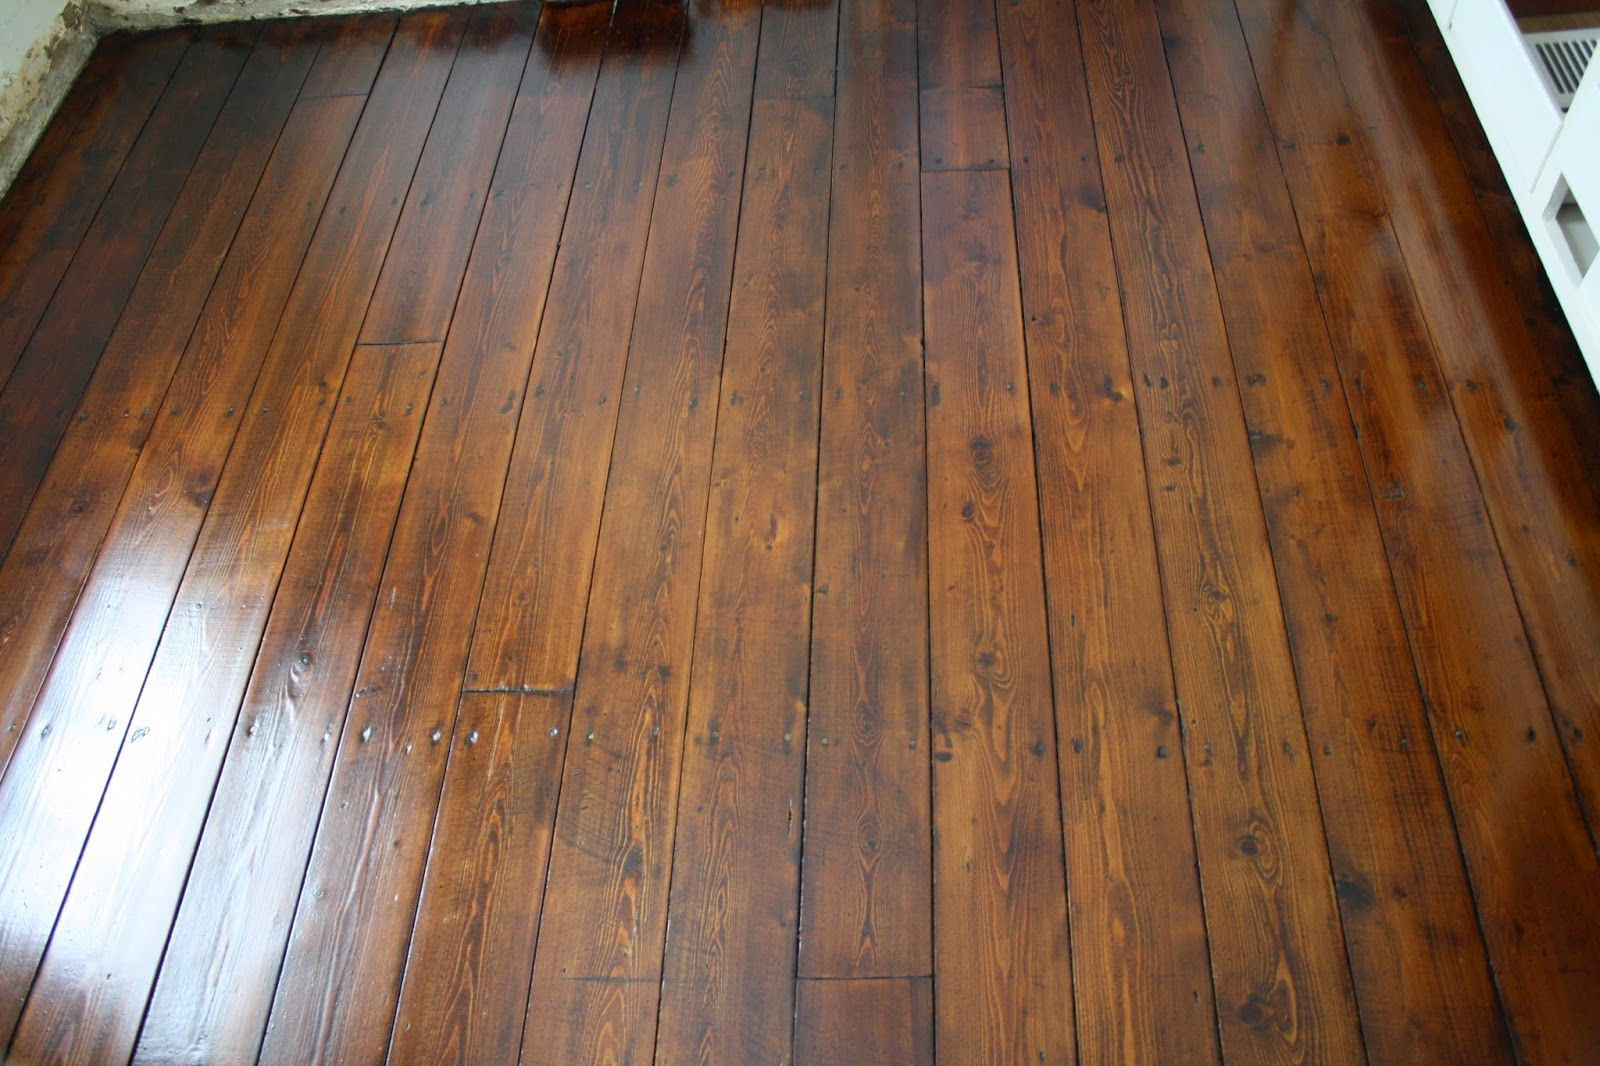 Are there wood floors under there?...Breakfast Nook Floor